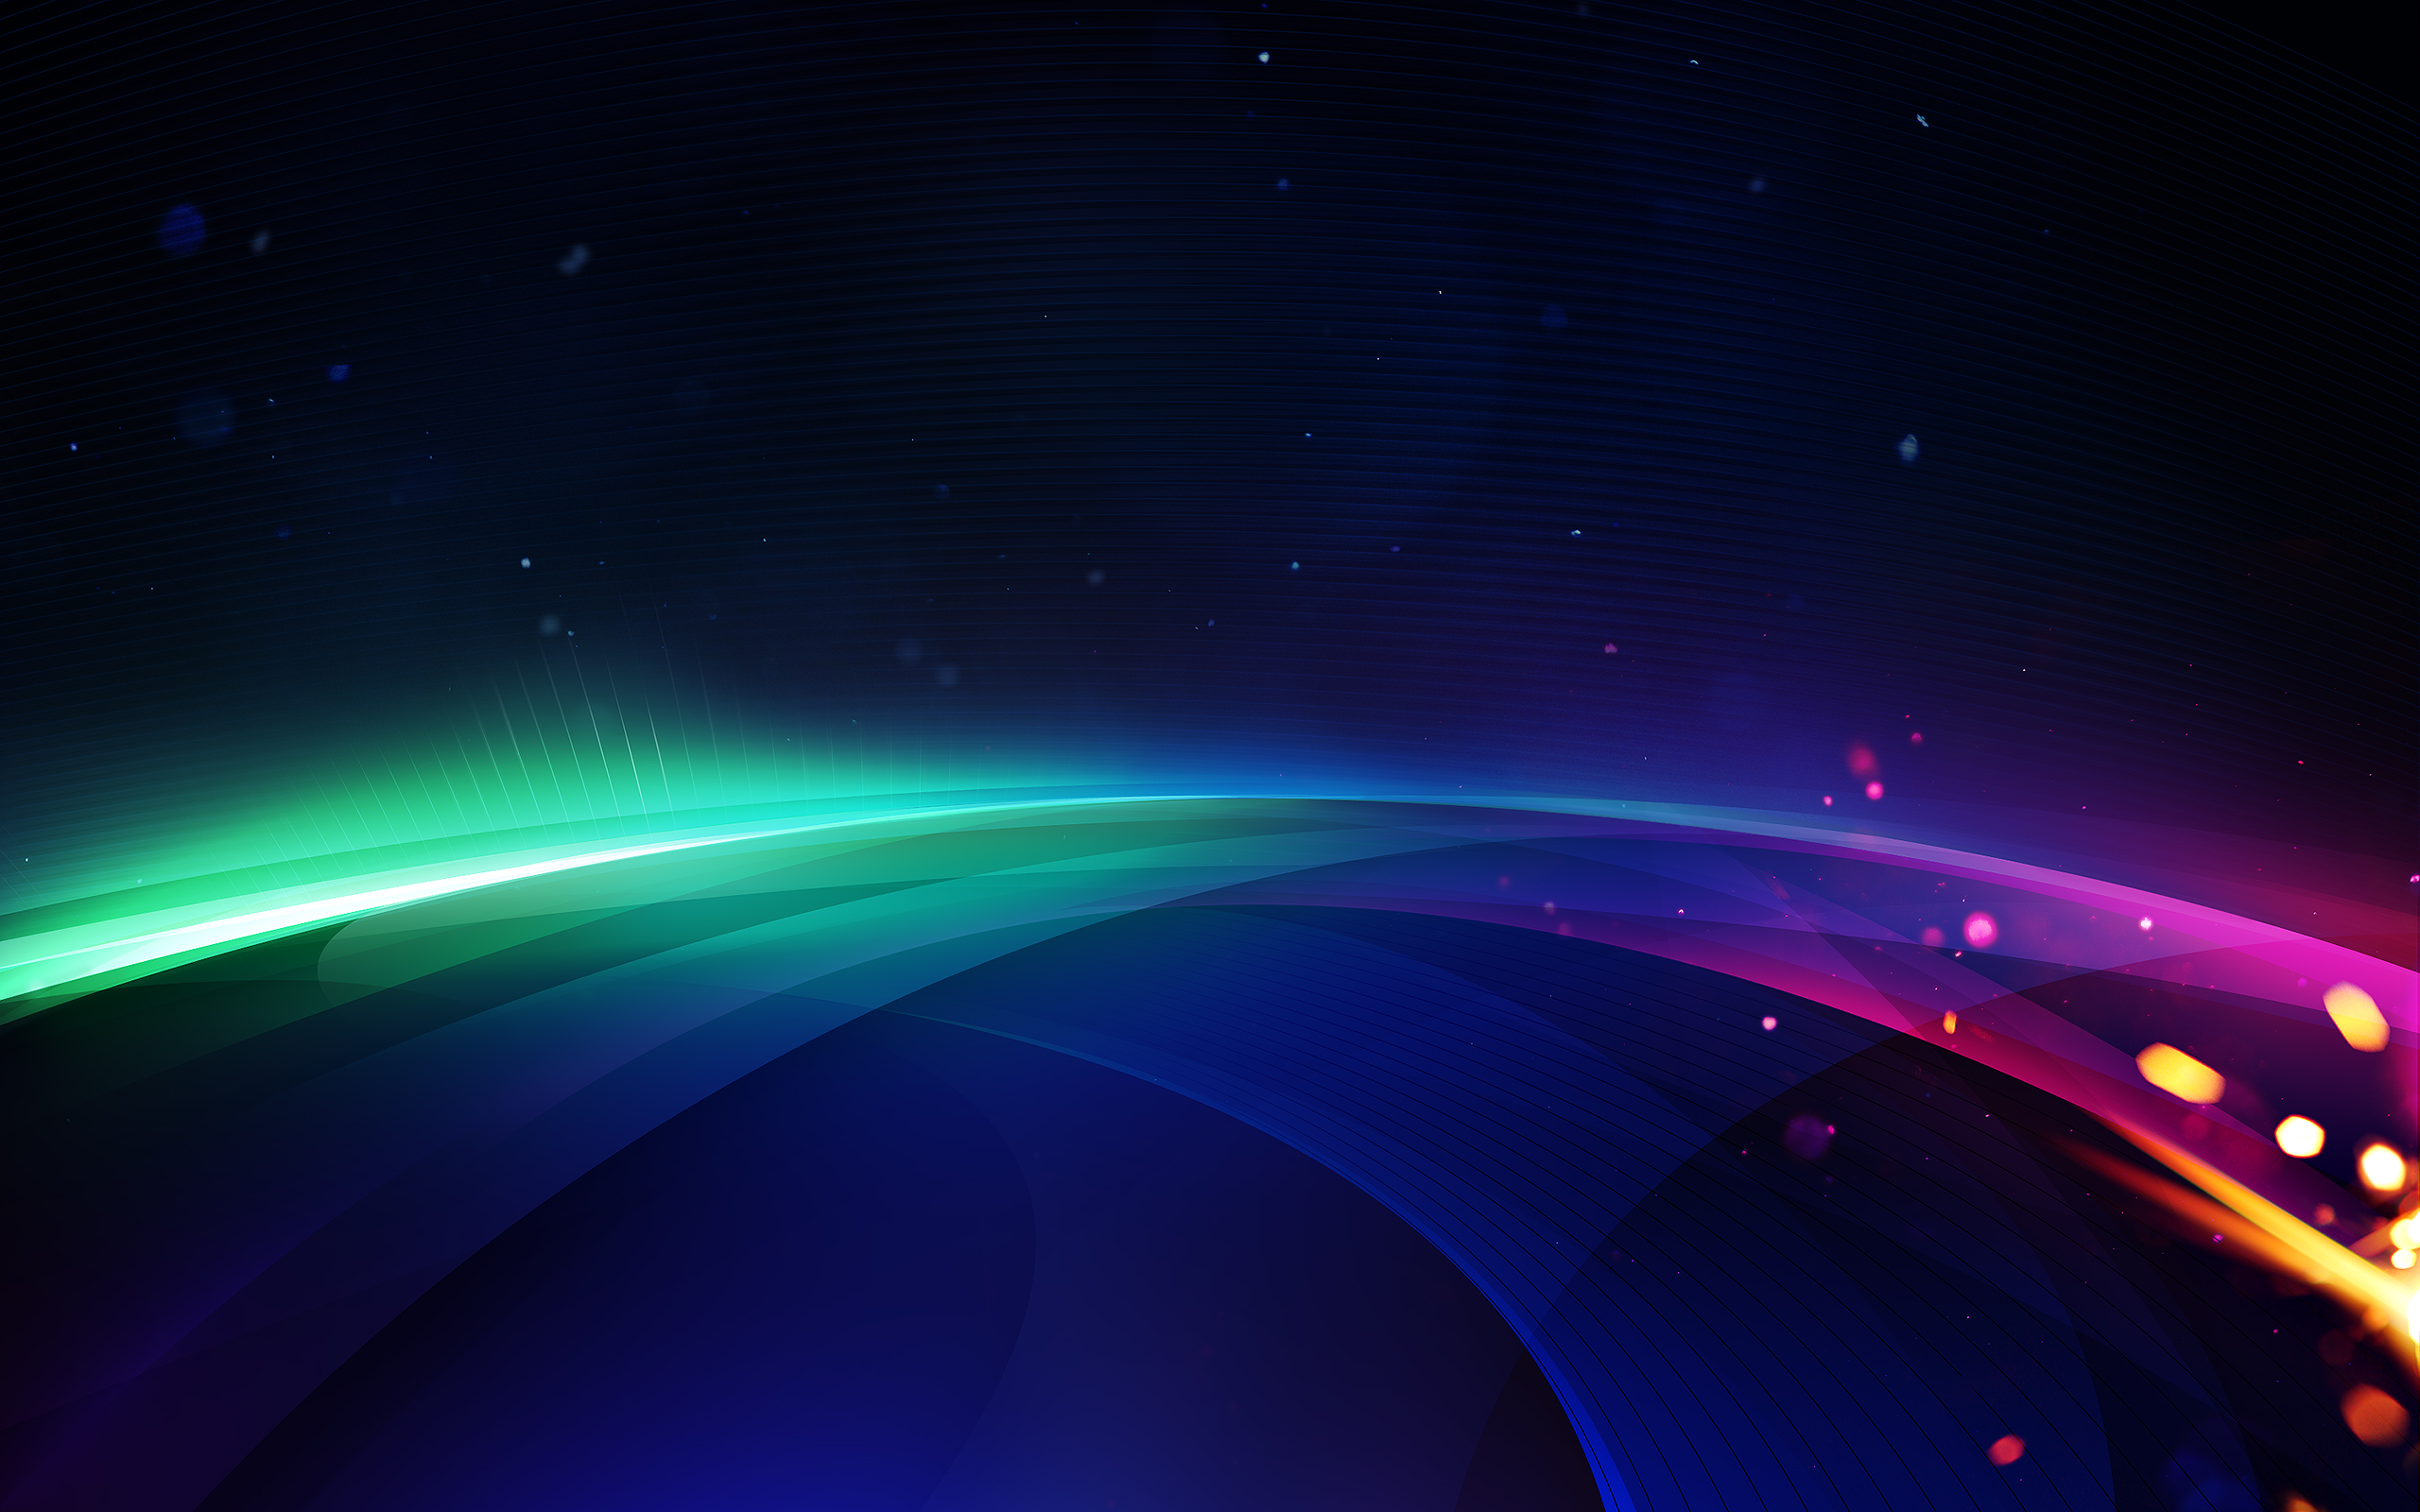 Windows 8 theme wallpapers and images   wallpapers pictures photos 2560x1600